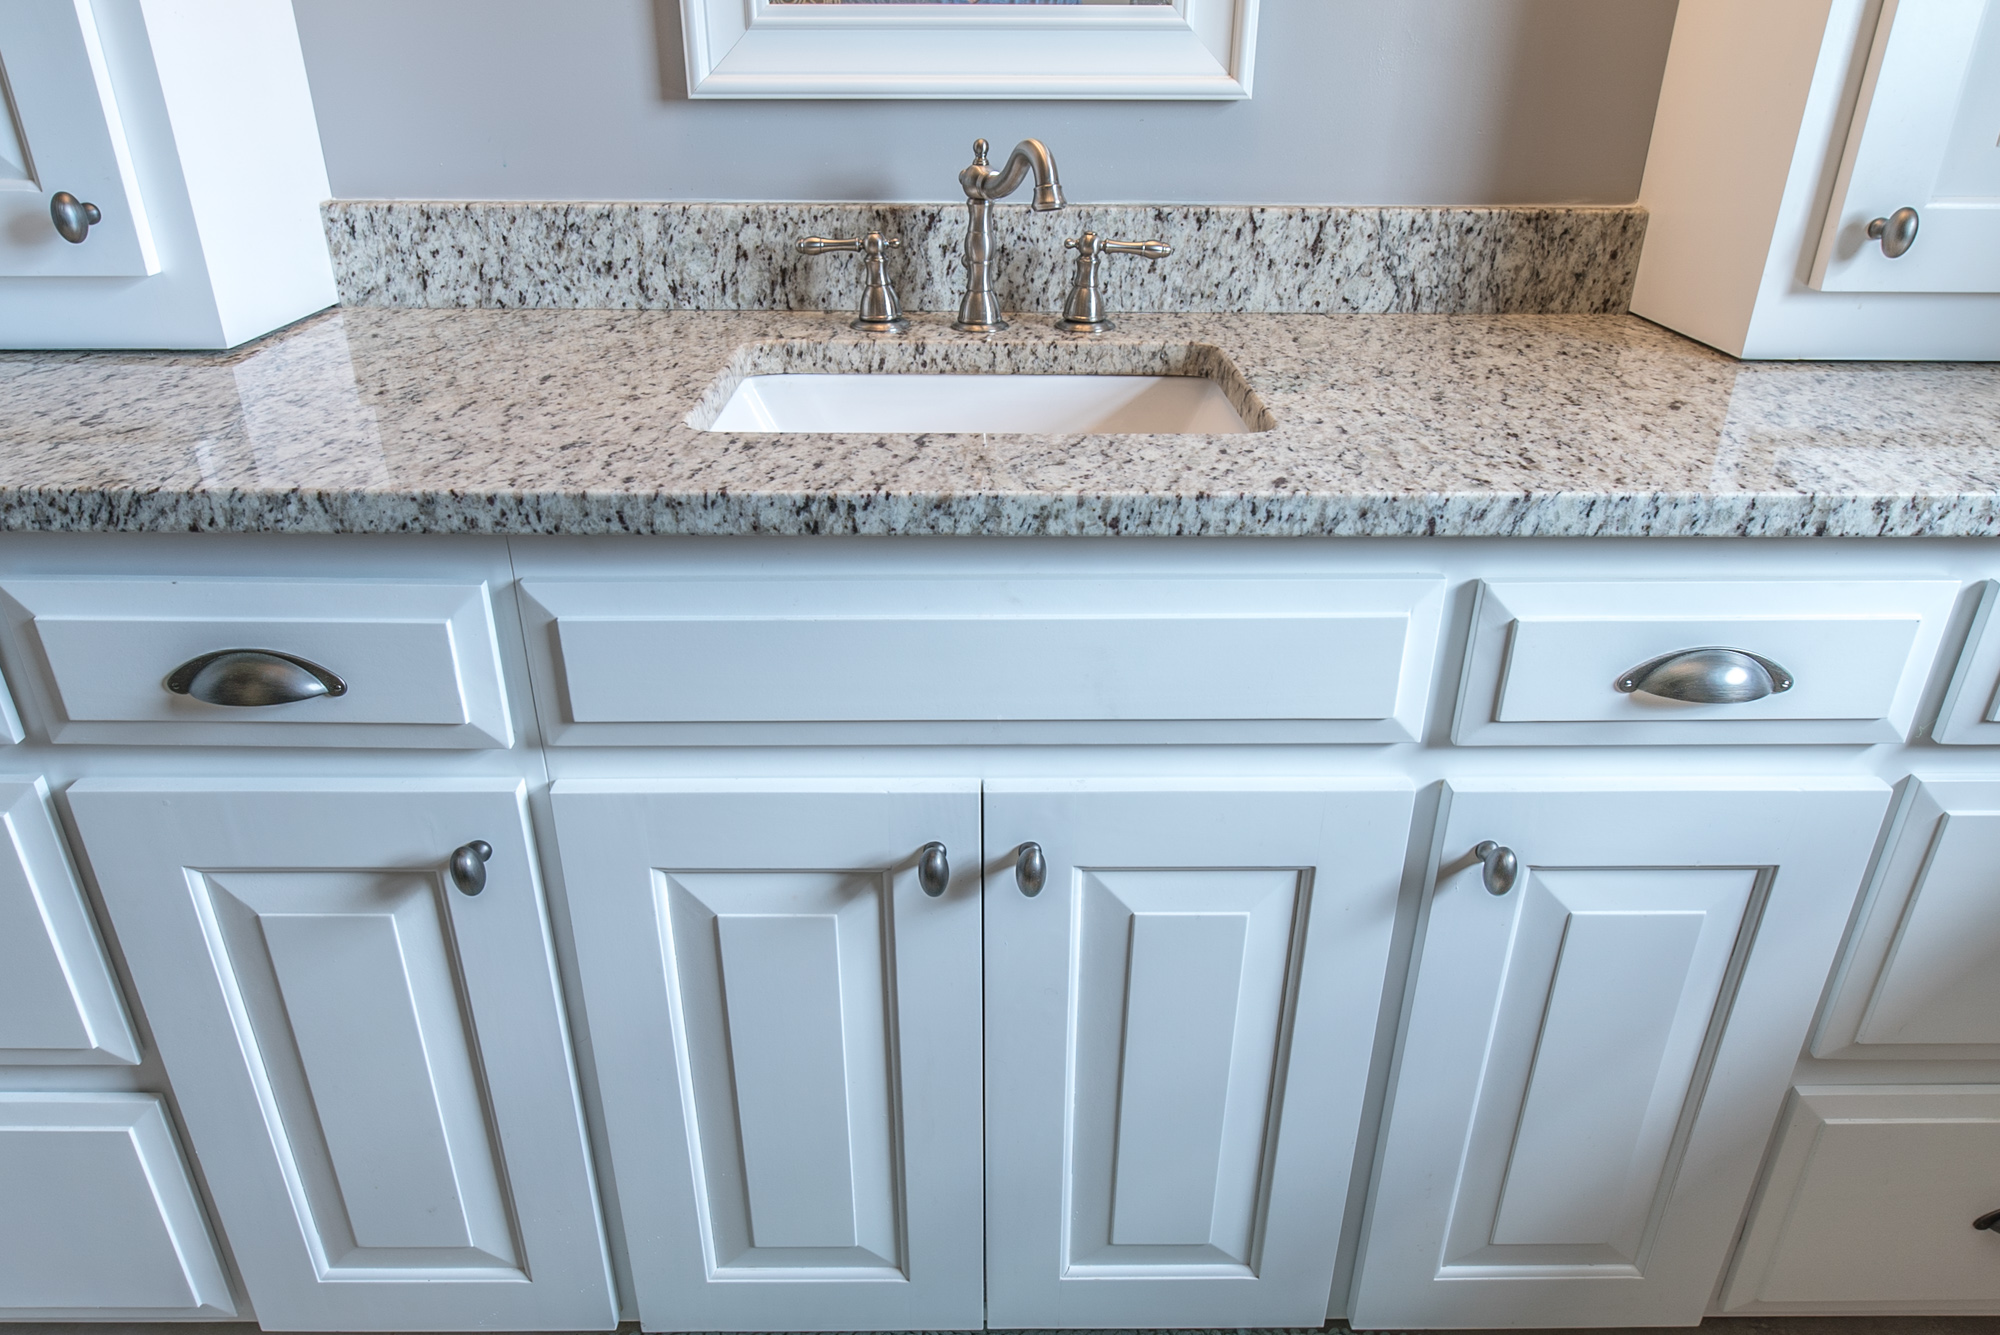 Bathroom Remodel - Granite counter with backsplash and white cabinets